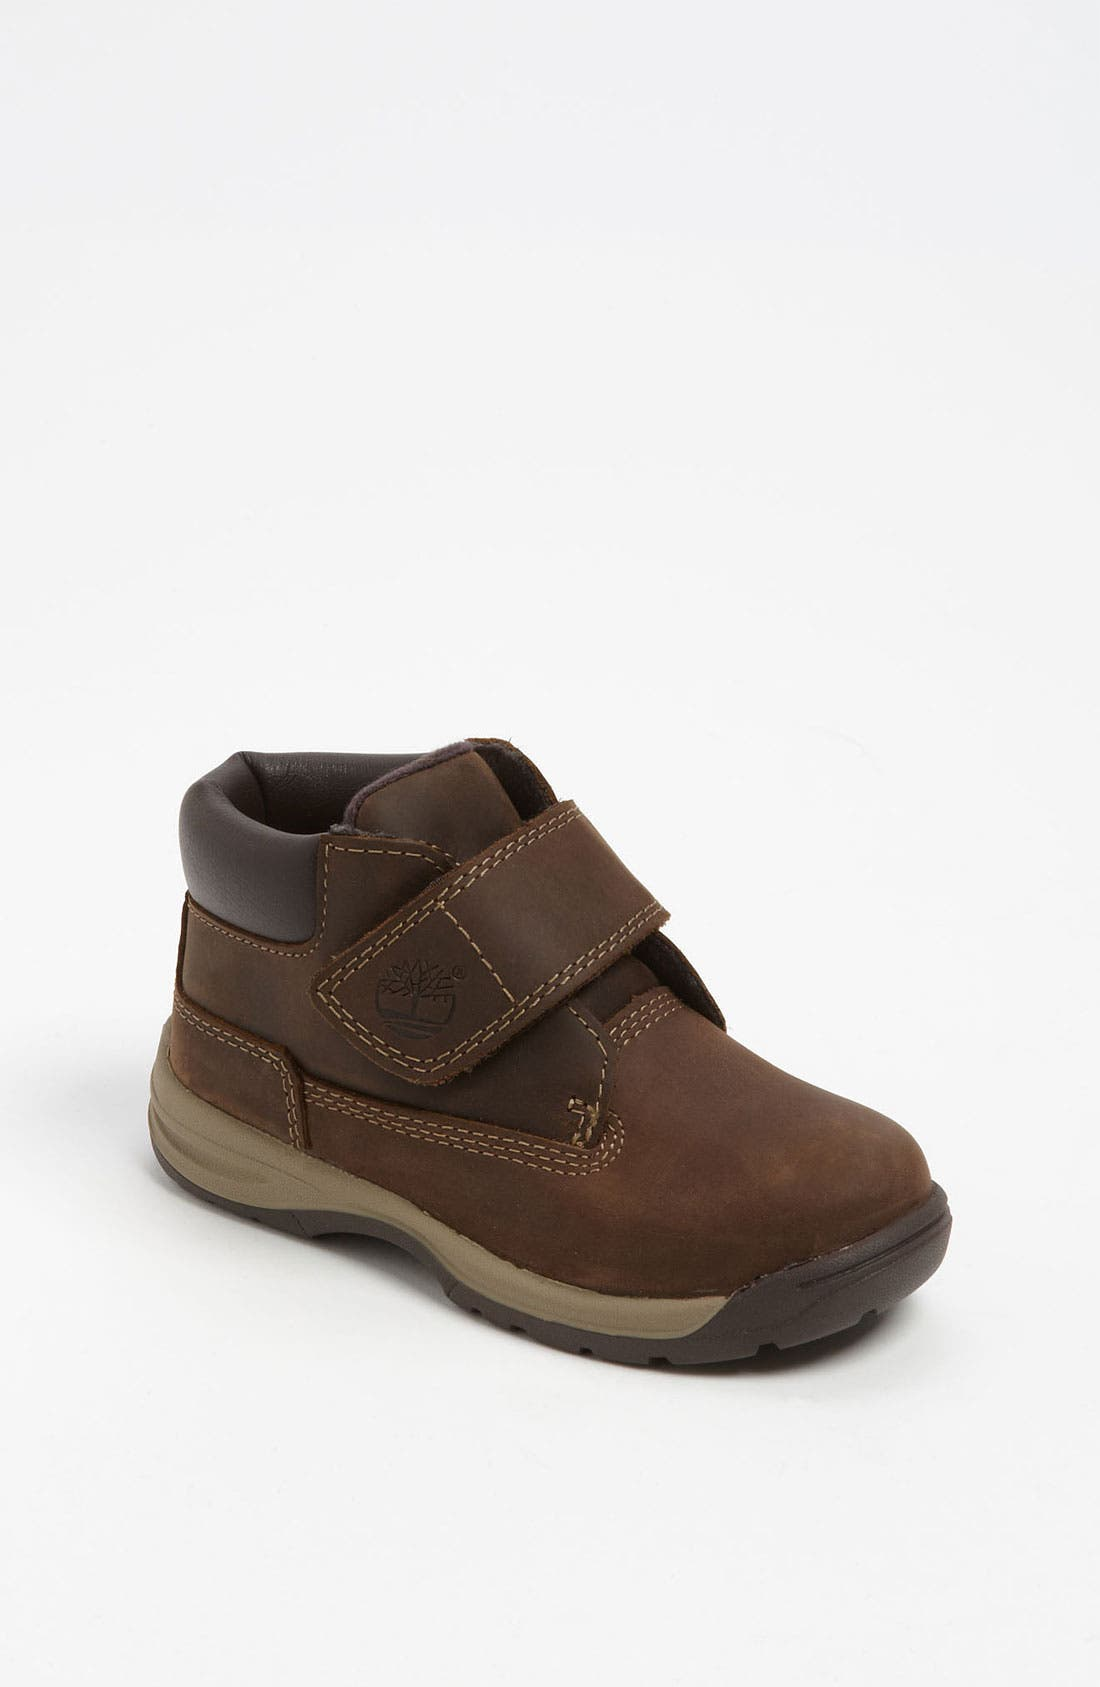 Alternate Image 1 Selected - Timberland Earthkeepers® 'Timber Tykes' Boot (Walker & Toddler)